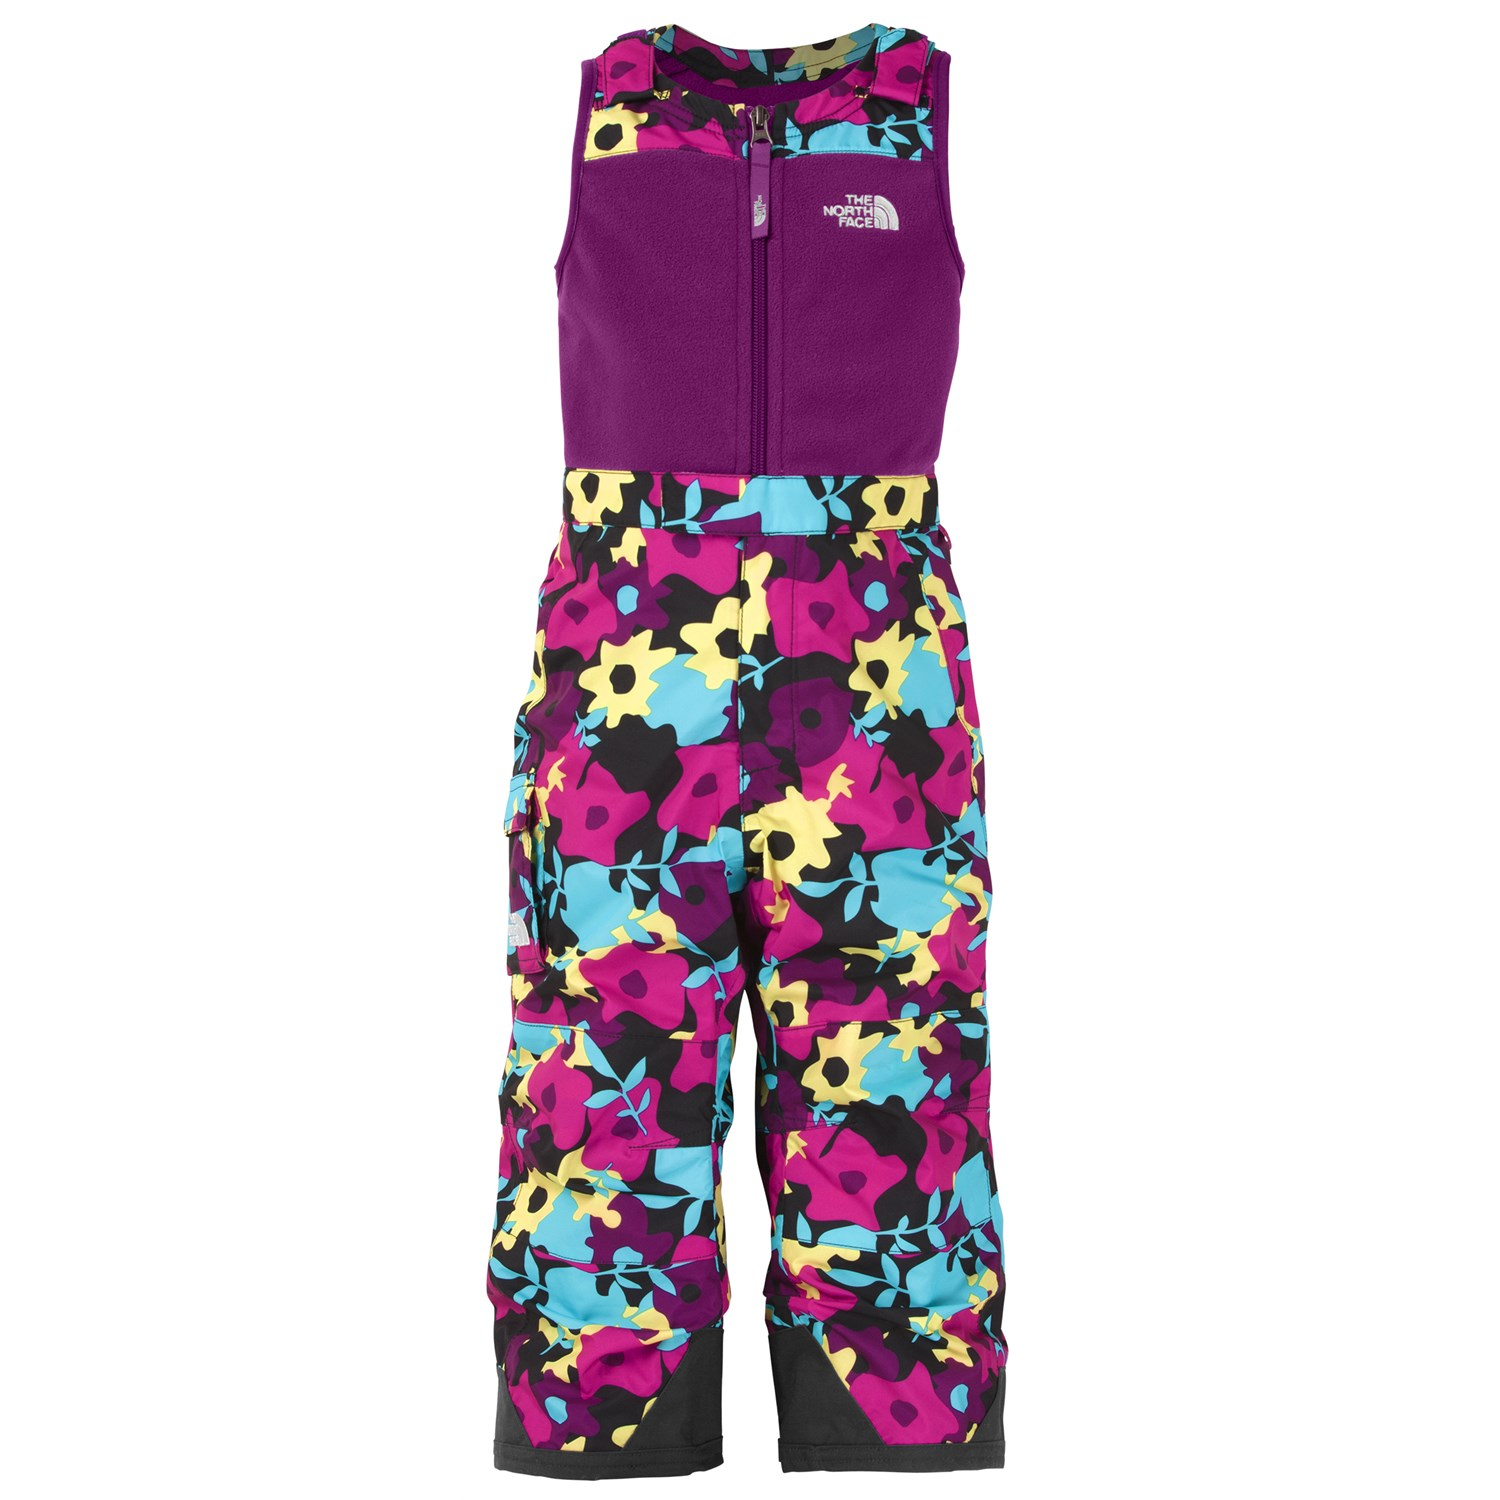 3b2c86c20c61a The North Face Snowdrift Insulated Bib Pants - Toddler - Girl s